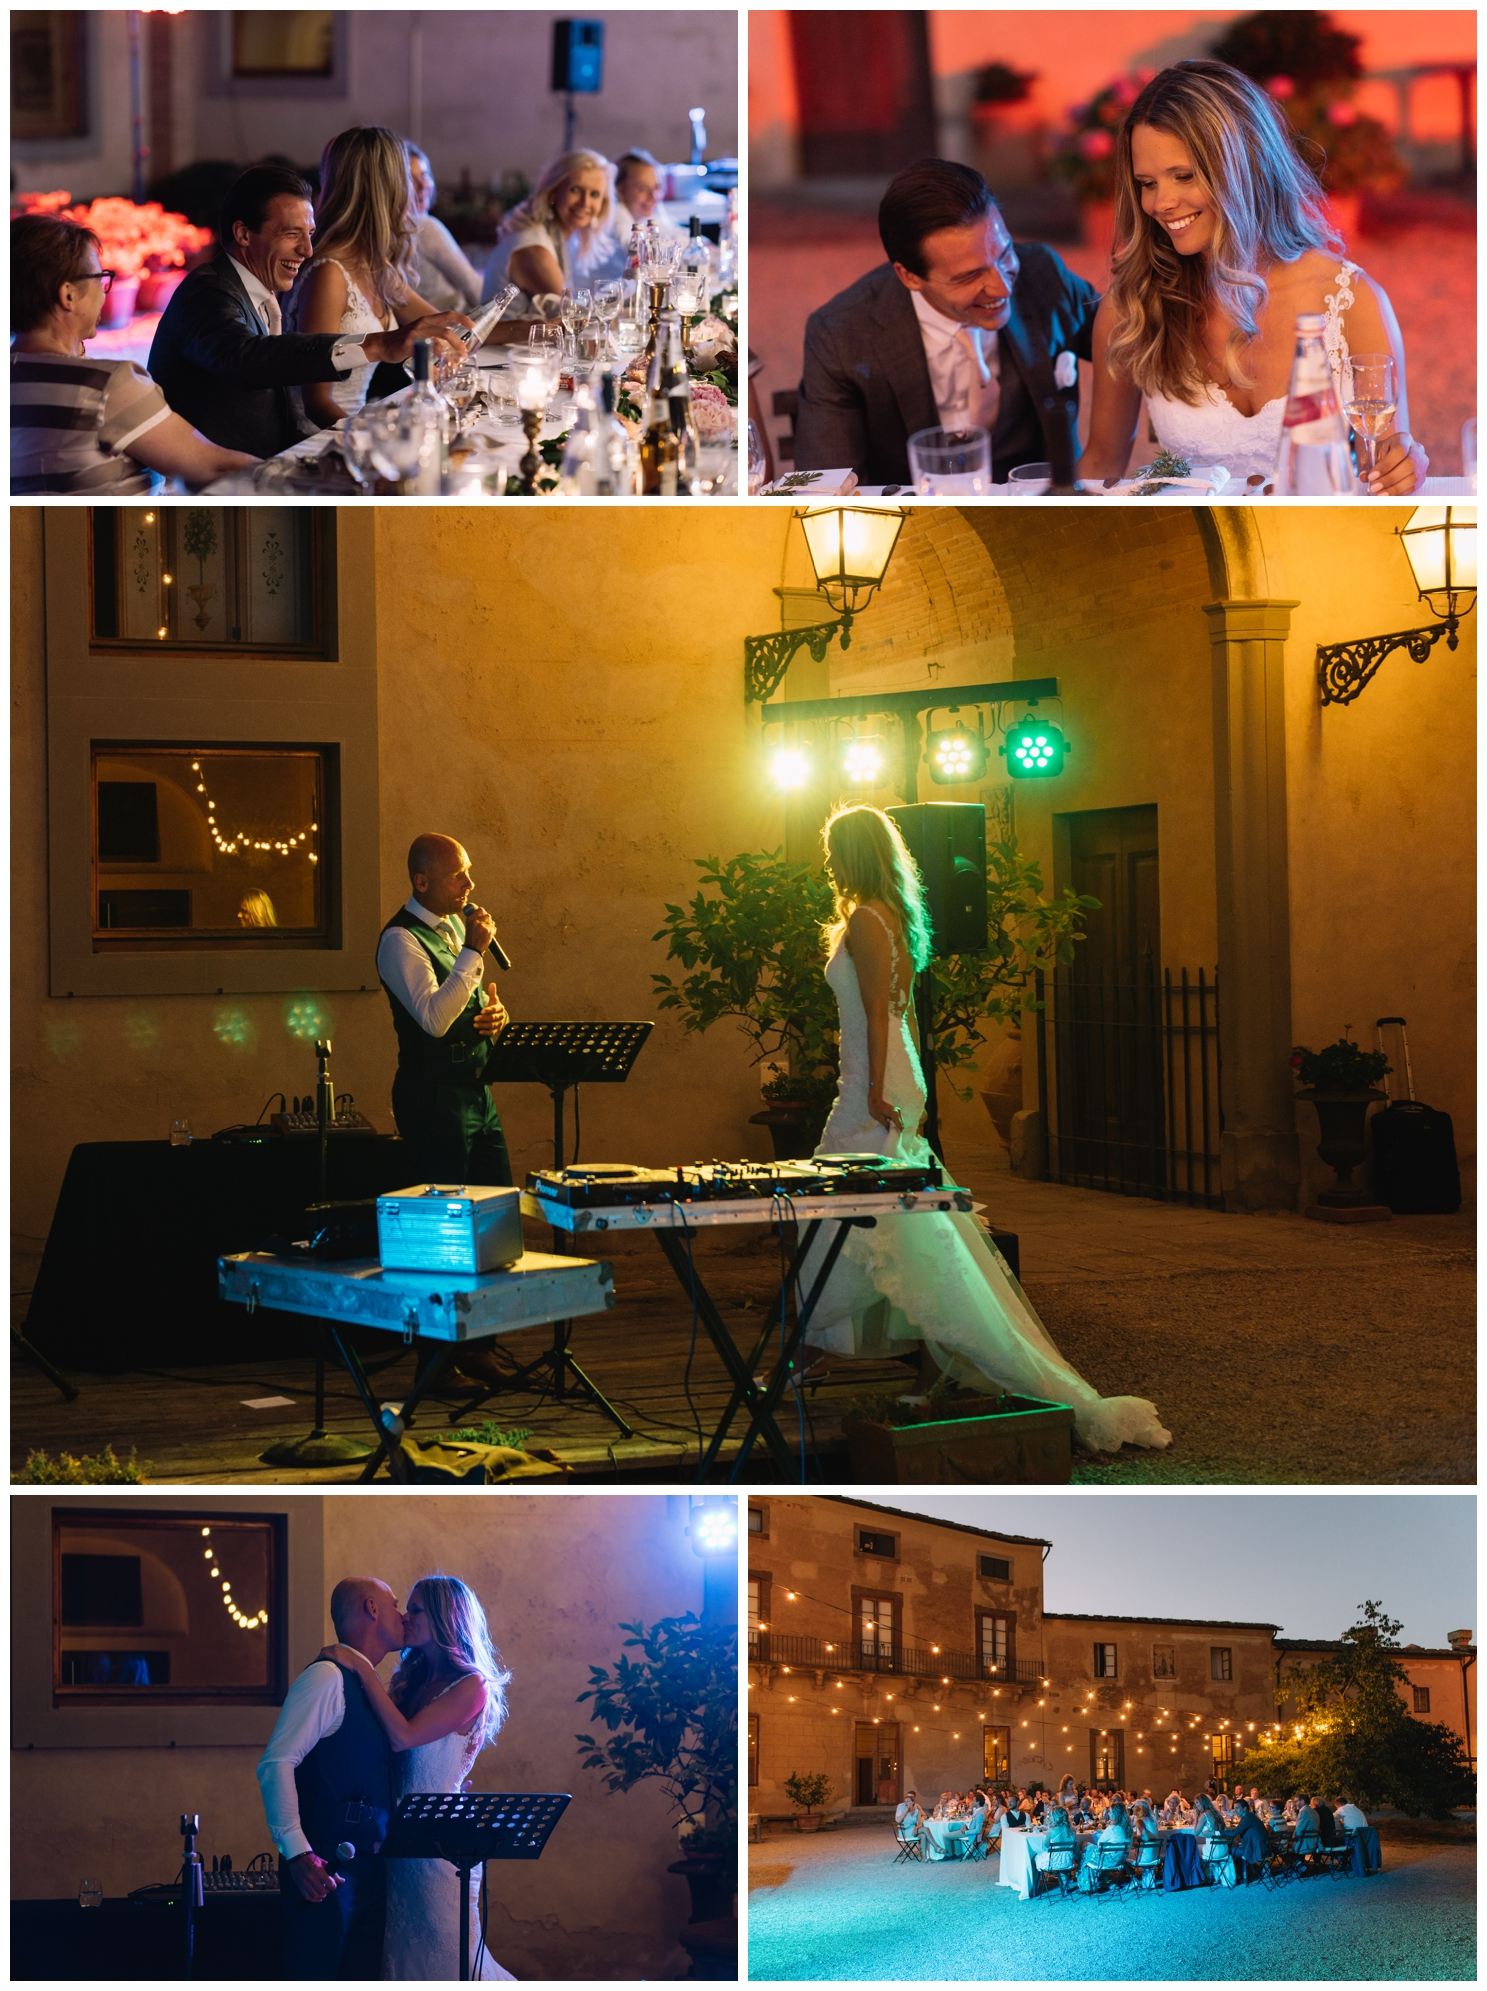 Wedding_Photographer_Tuscany_Florence_Italy_61.jpg